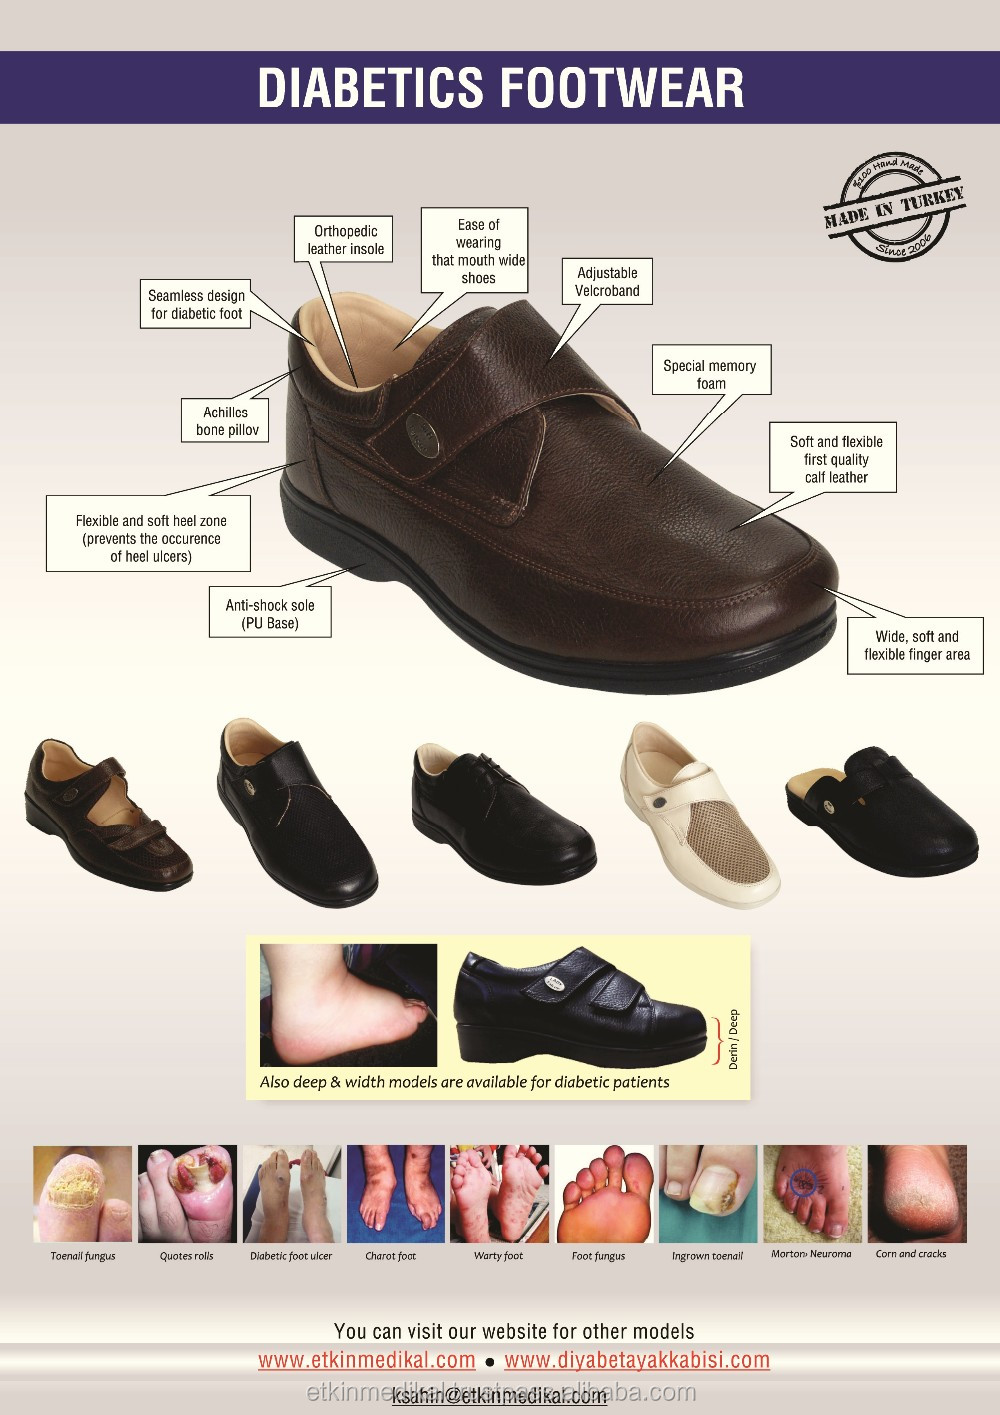 Product Genuine Diabetic Model Footwear Comfort Leather Best Orthopedic Slippers 8w5BqqI